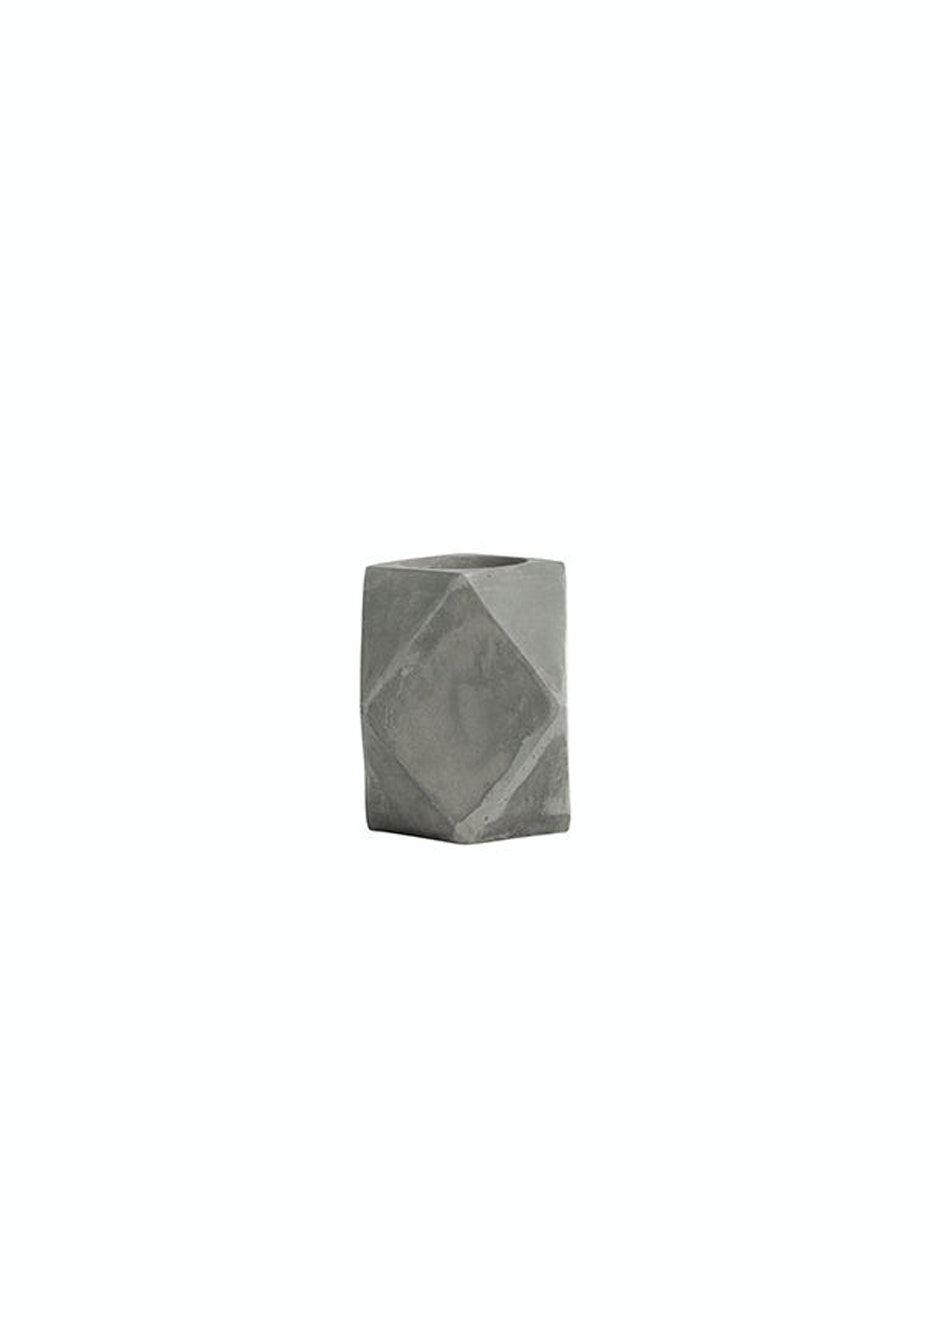 6 PACK General Eclectic - Tealight Cement Diamond